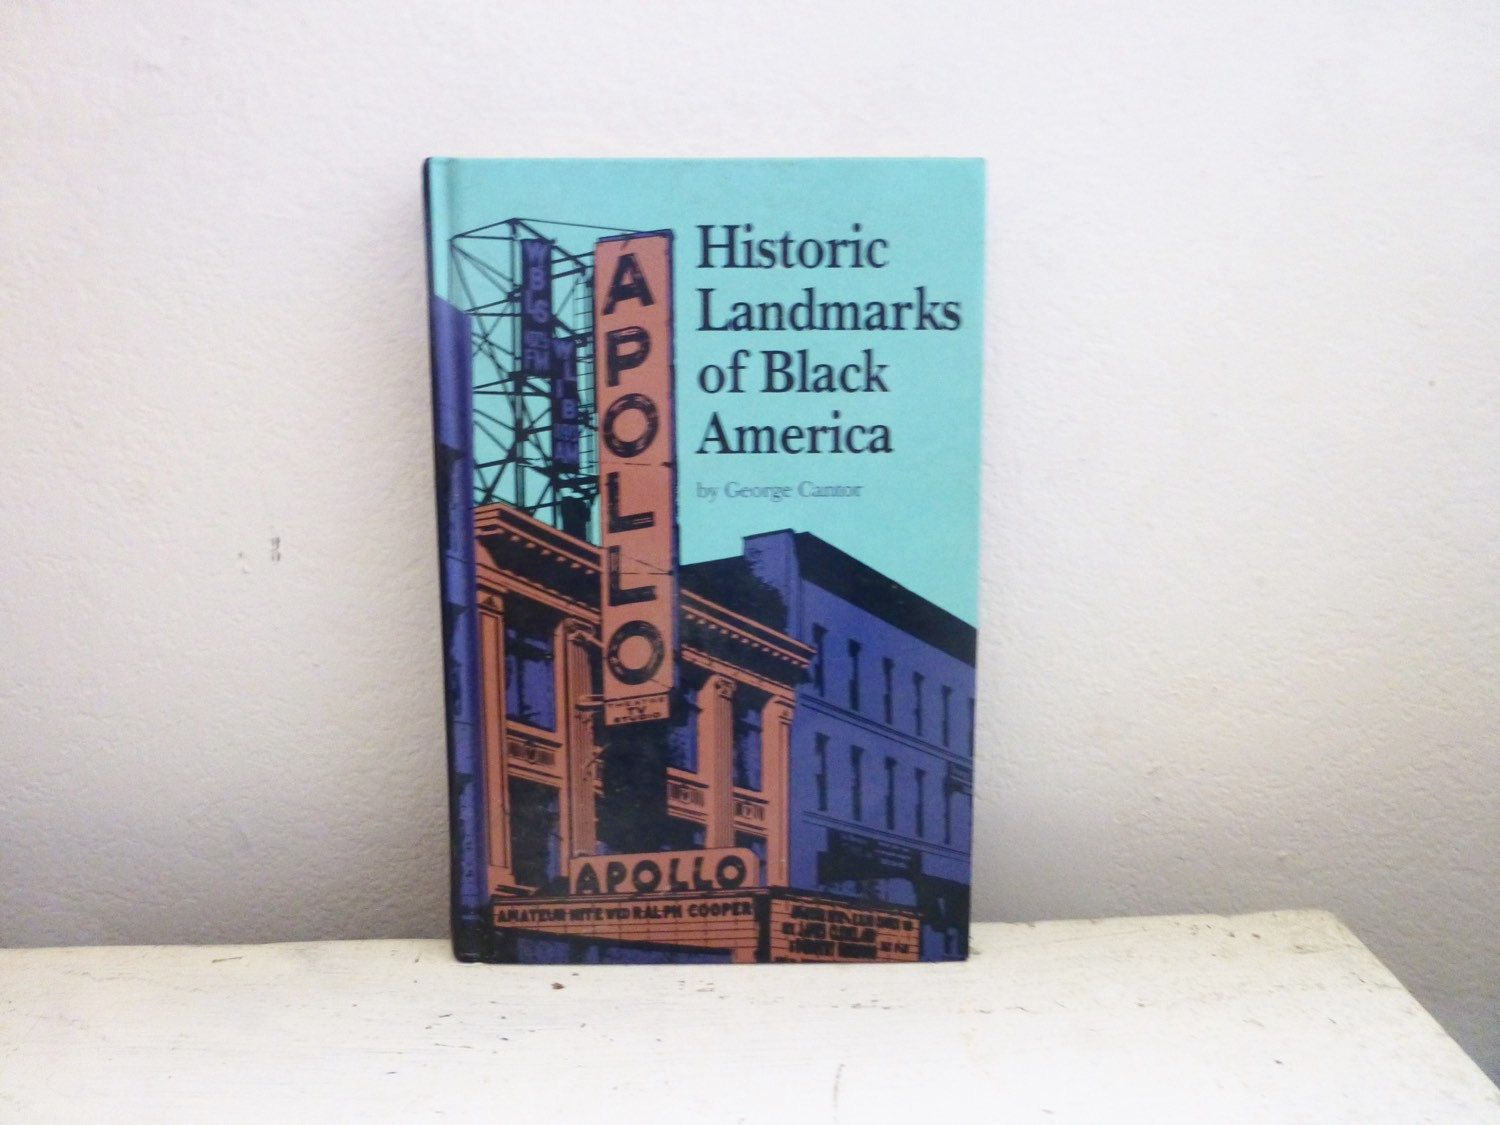 Historic Landmarks Of Black America By George Cantor